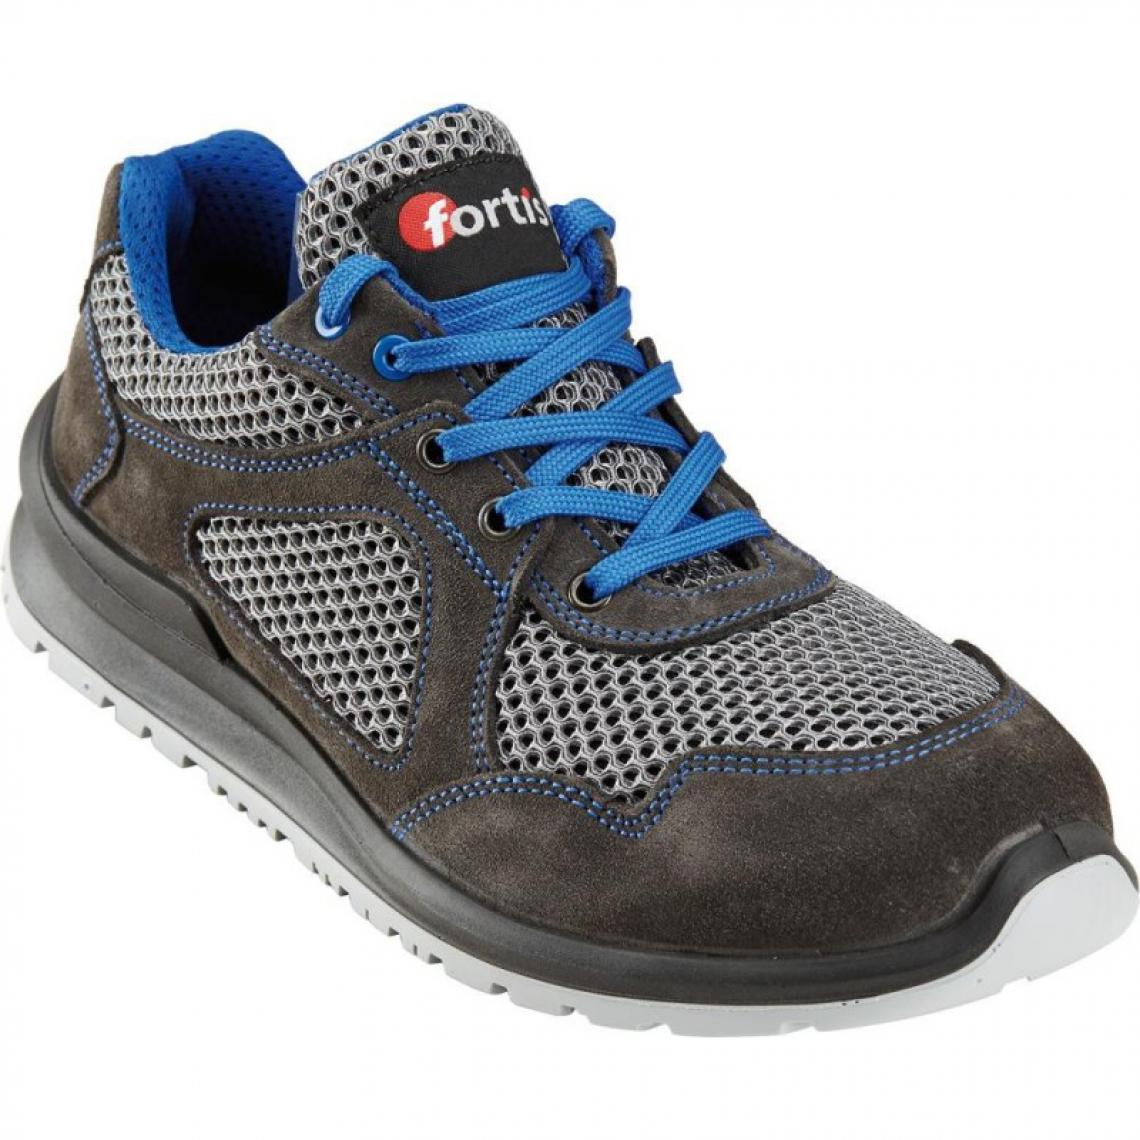 Fortis Chaussures basses Dain S1P, T.42,turq., FORTIS